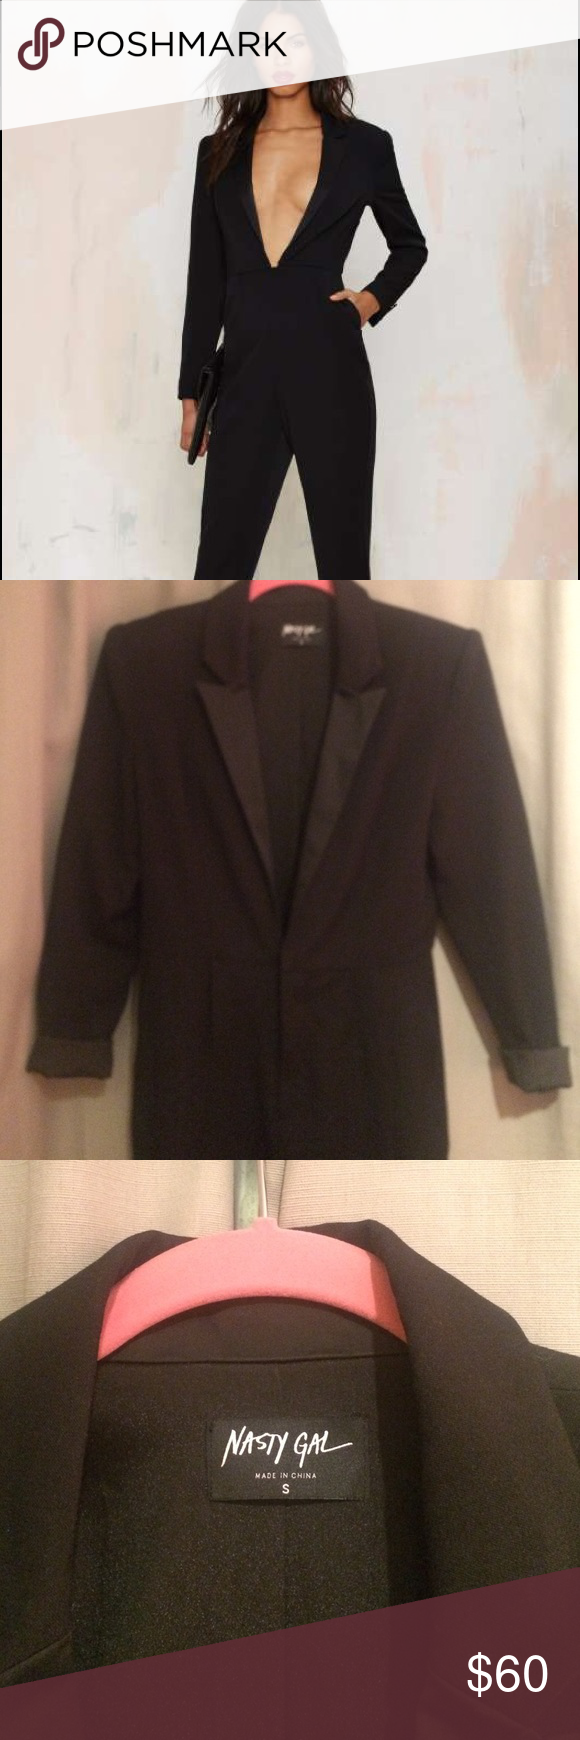 29574088e12 Nasty Gal Like a Boss Tuxedo Jumpsuit Only worn once!!! Size small but runs  a bit large. Deep v front